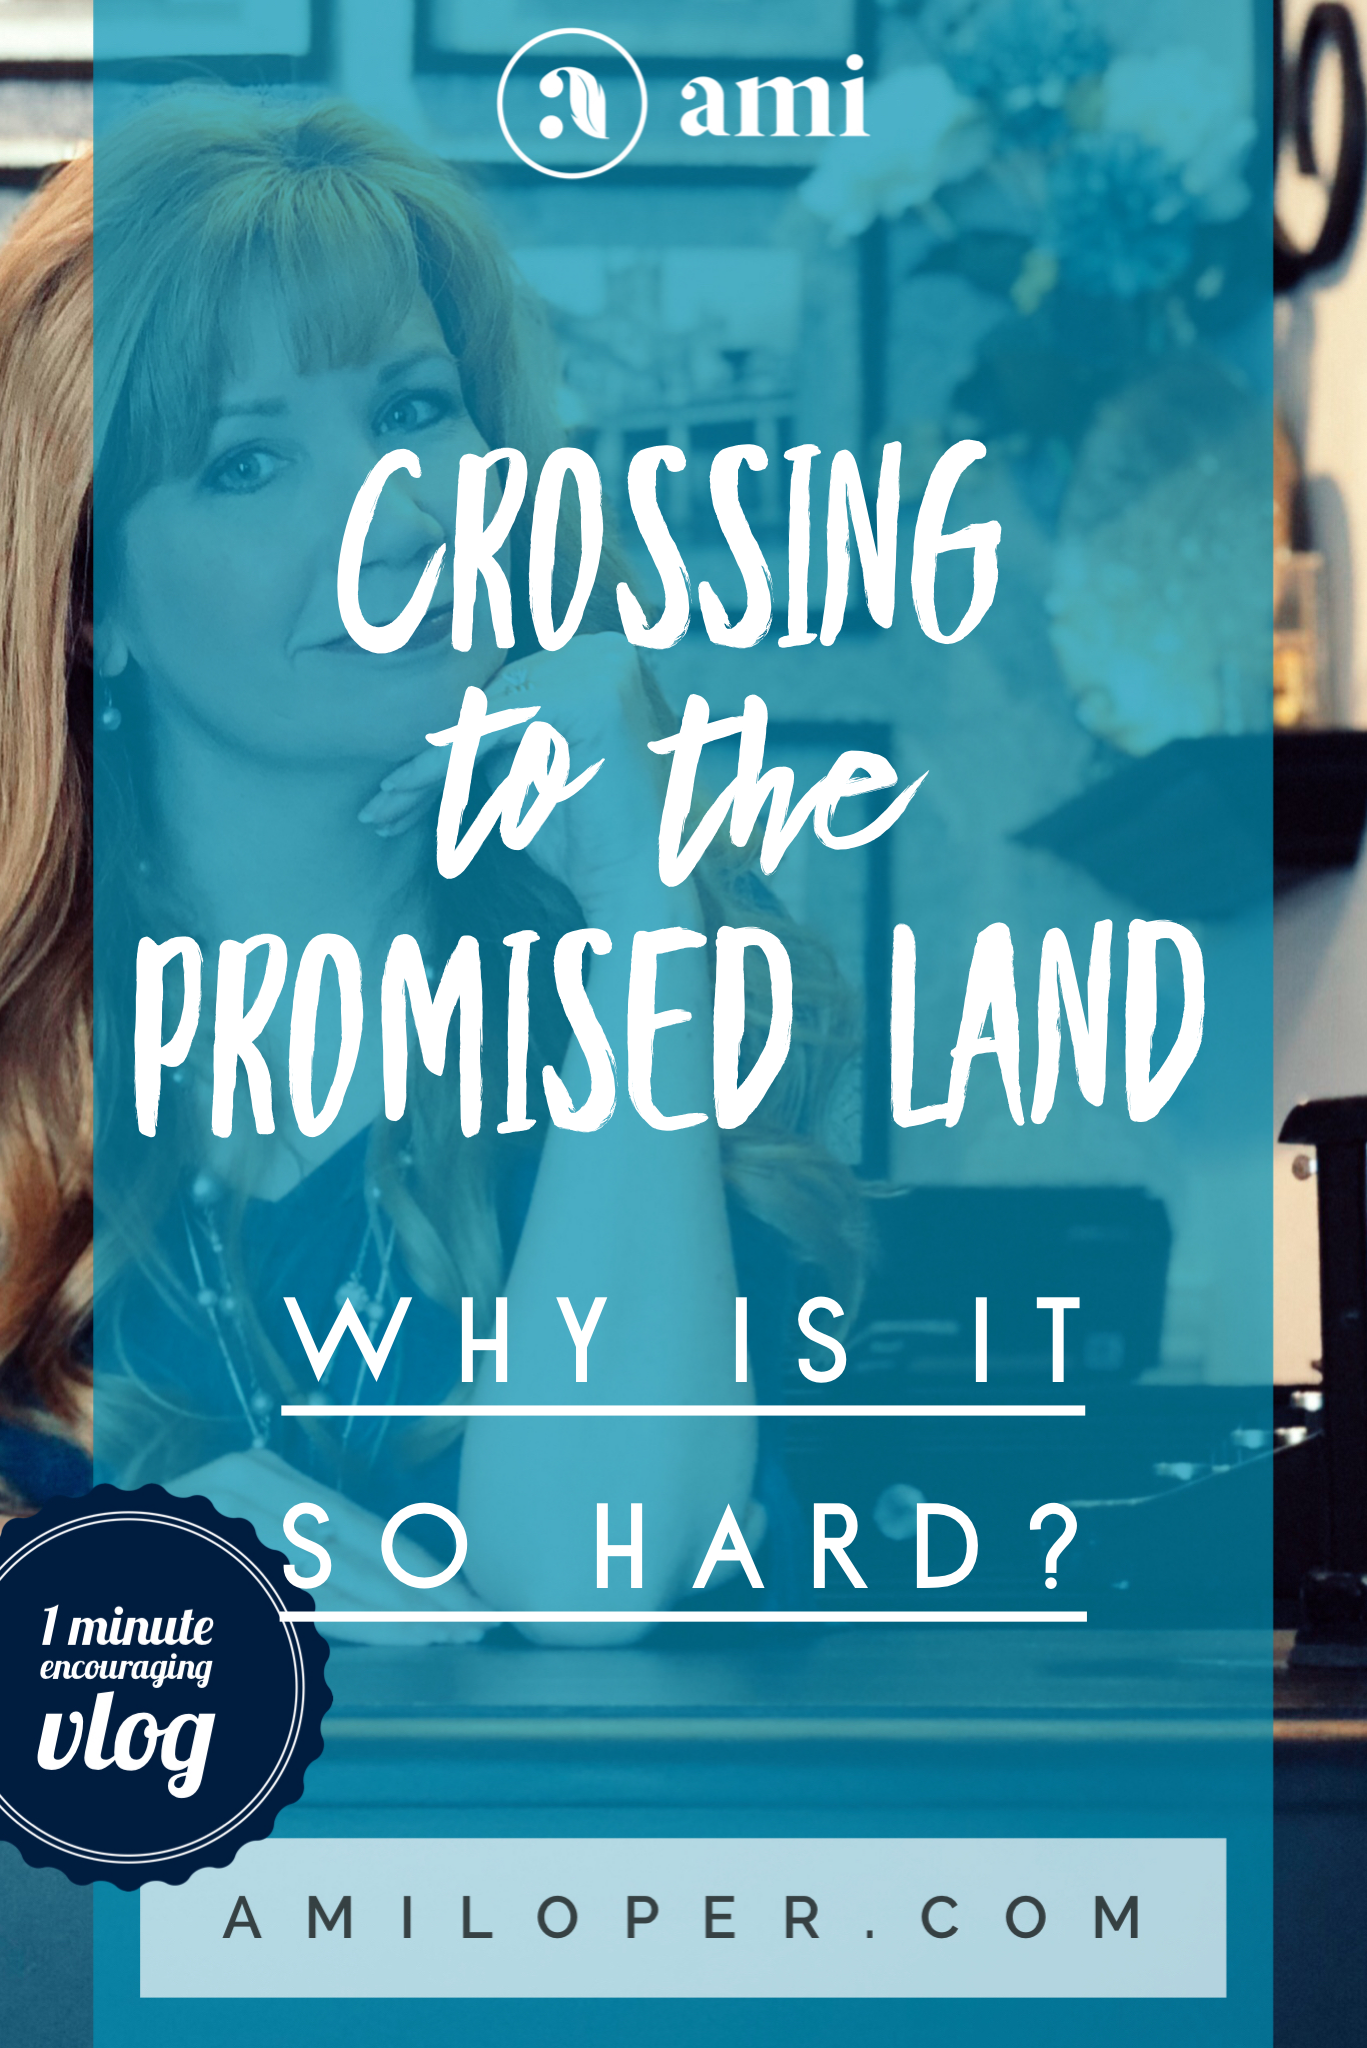 Don't you wish stepping out was easier? I know I have those moments. But our God loves to show Himself strong on our behalf - and that requires us doing things at some pretty strange moments! #PromisedLand #vlog #LifeIsHard #GodIsGood